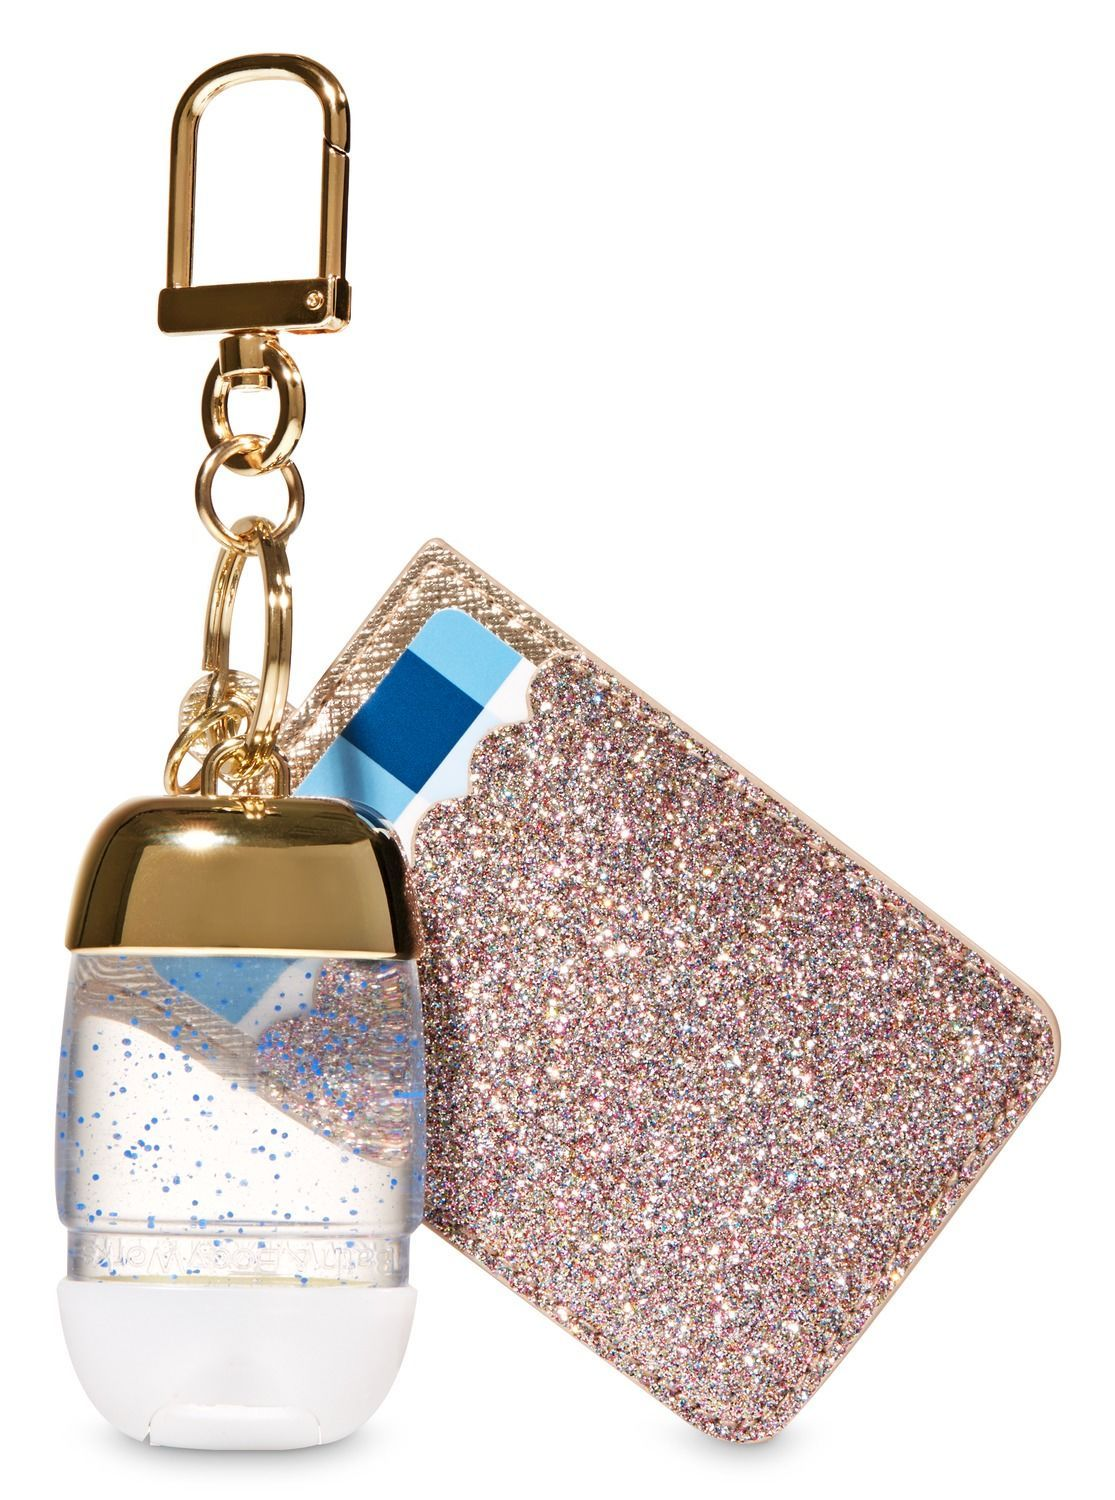 Glittery Gold Credit Card Pocketbac Holder By Bath Body Works